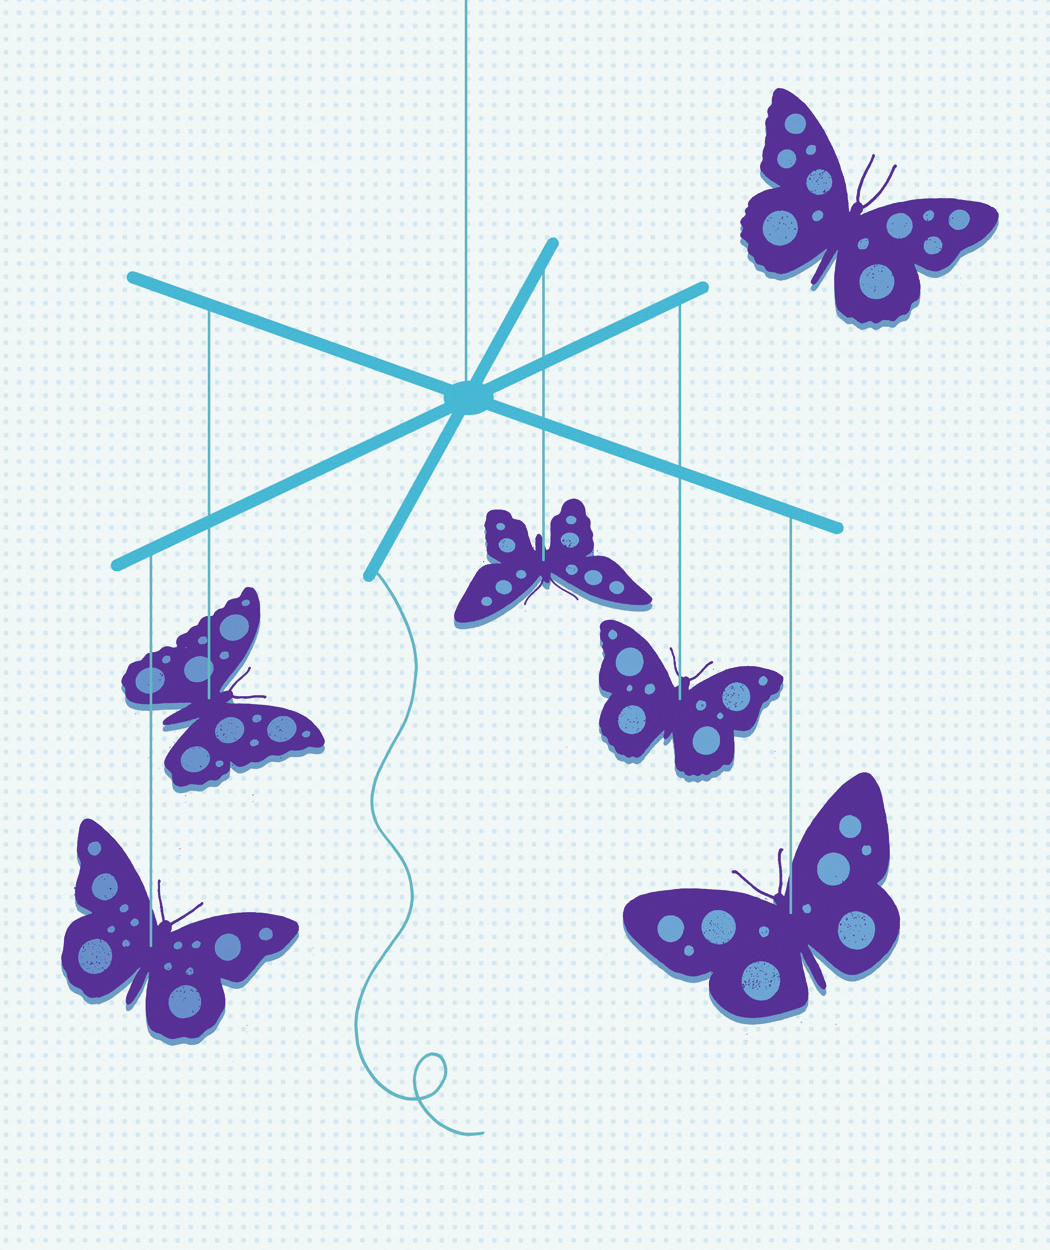 Illustration: Mobile of butterflies, one flying free